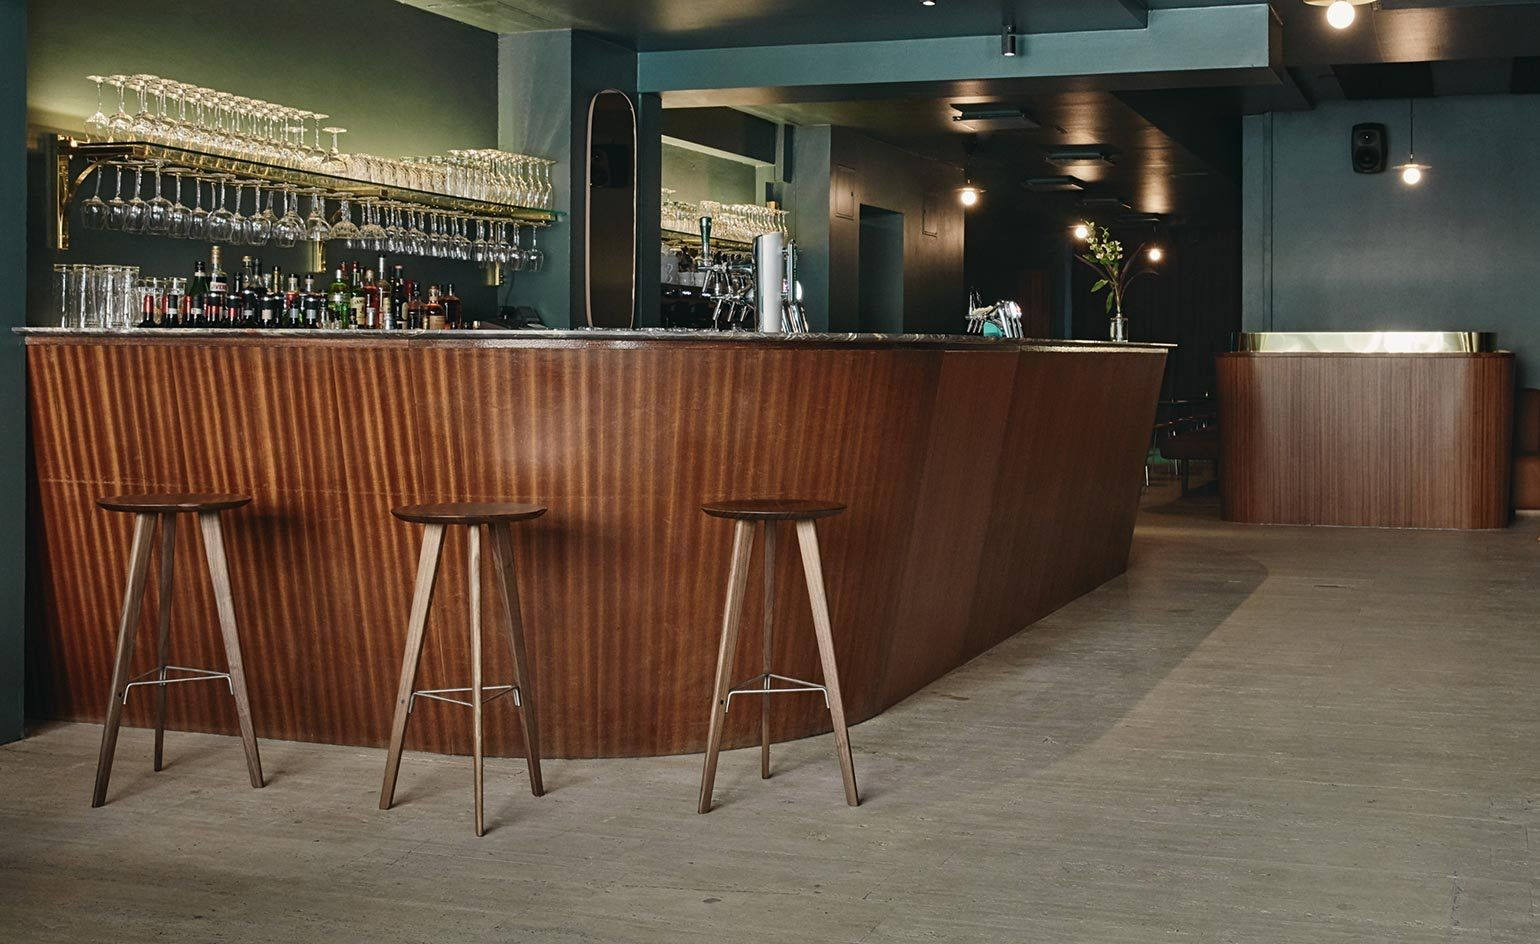 when antti eerika¤inen asked studio joanna laajisto to design a bar